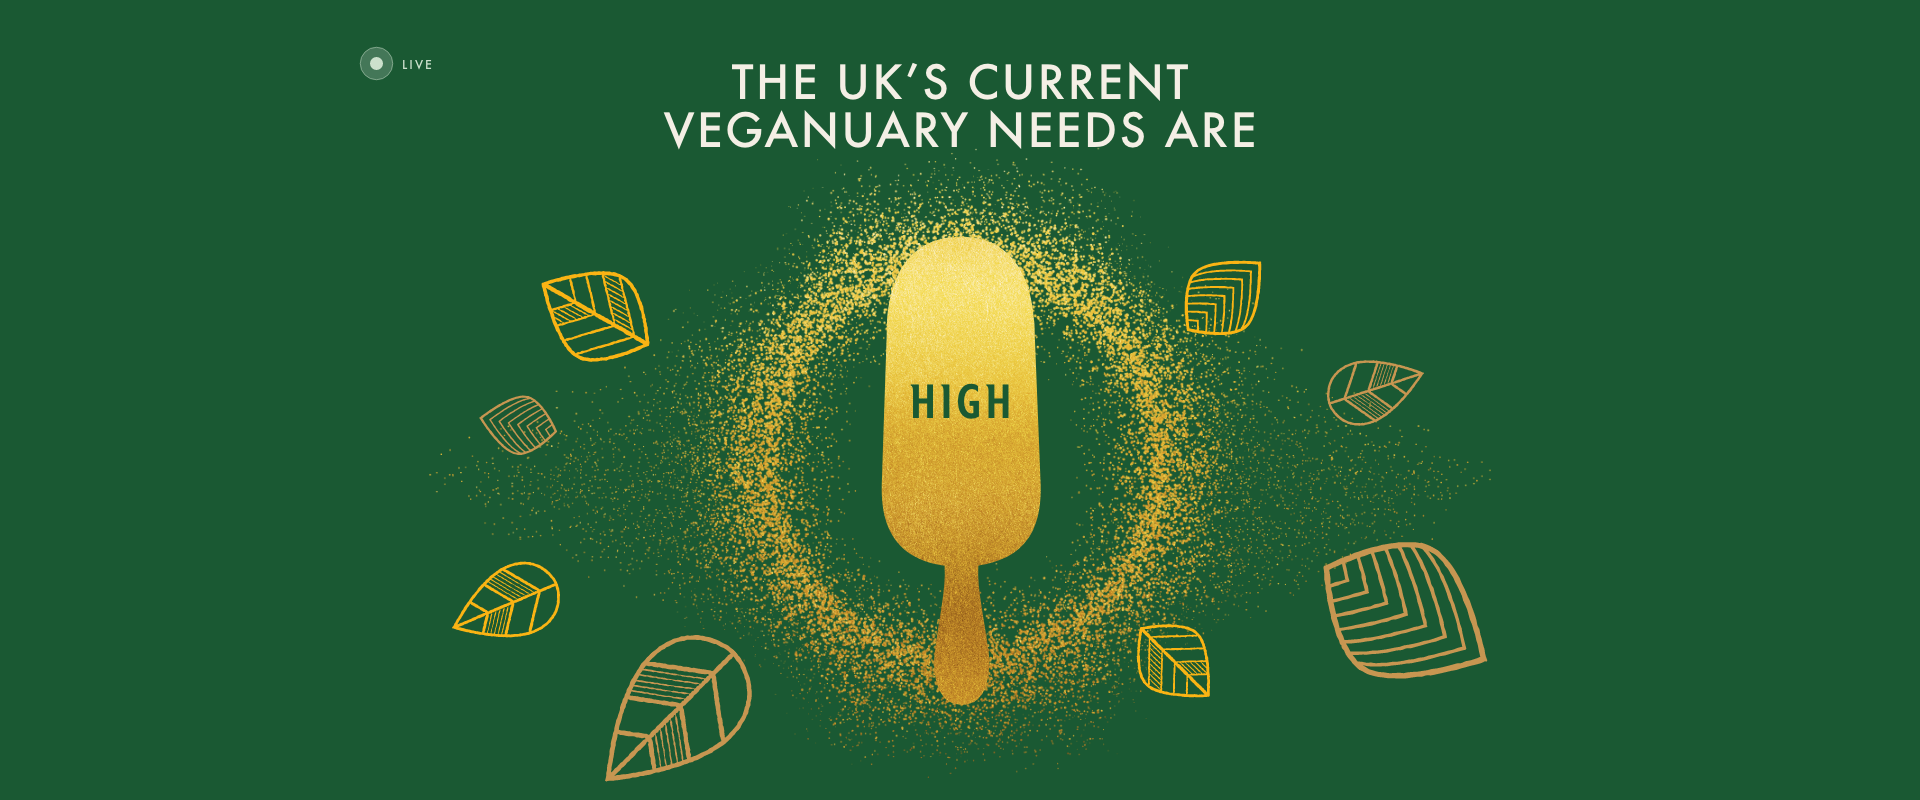 The UK's Current Veganuary Levels are High